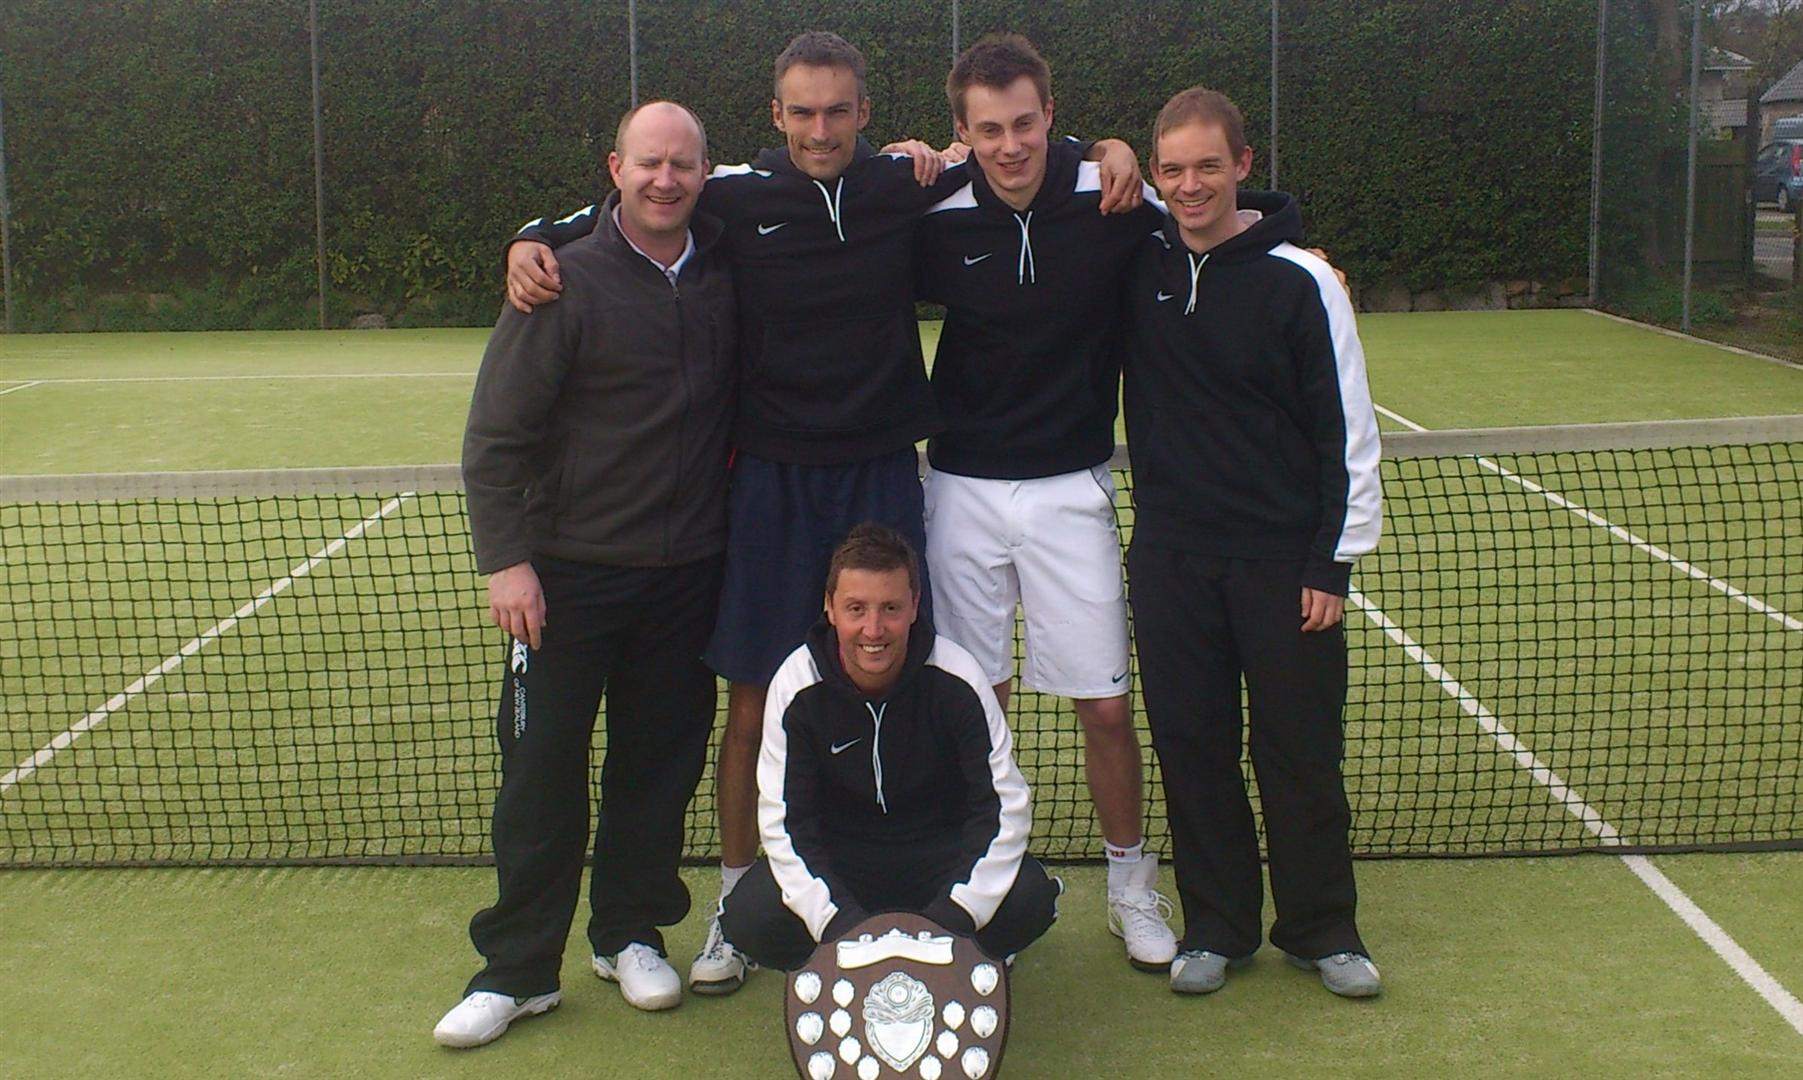 Aegon Team Tennis